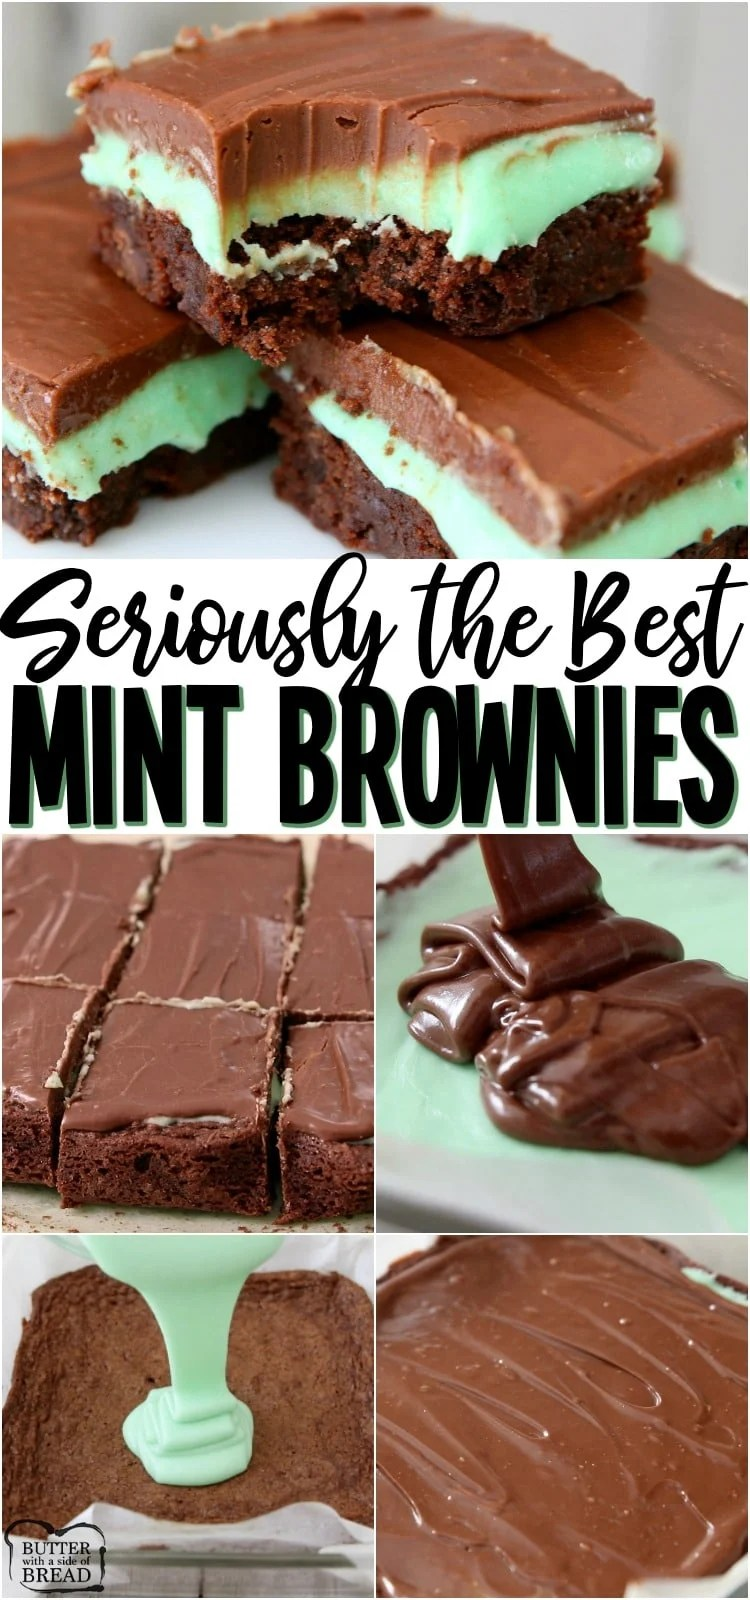 Best Mint Brownie Recipe made easy & baked to fudgy, chocolate perfection! The double layer of mint & chocolate frosting is incredible. Perfect for St. Patrick's Day dessert! #mint #brownies #baking #chocolate #fudge #dessert #green #StPatricksDay